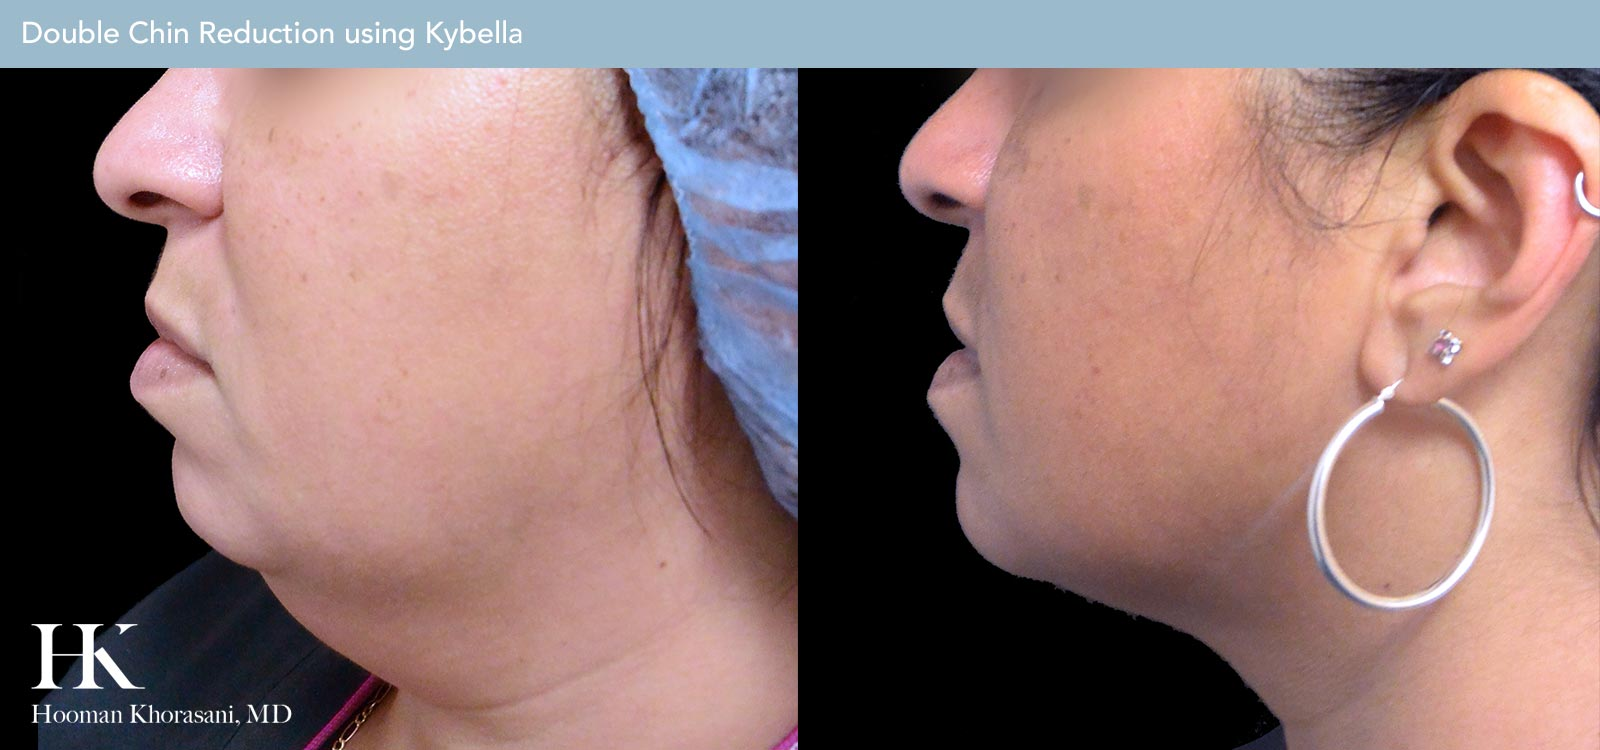 Double Chin Reduction Before and After Case